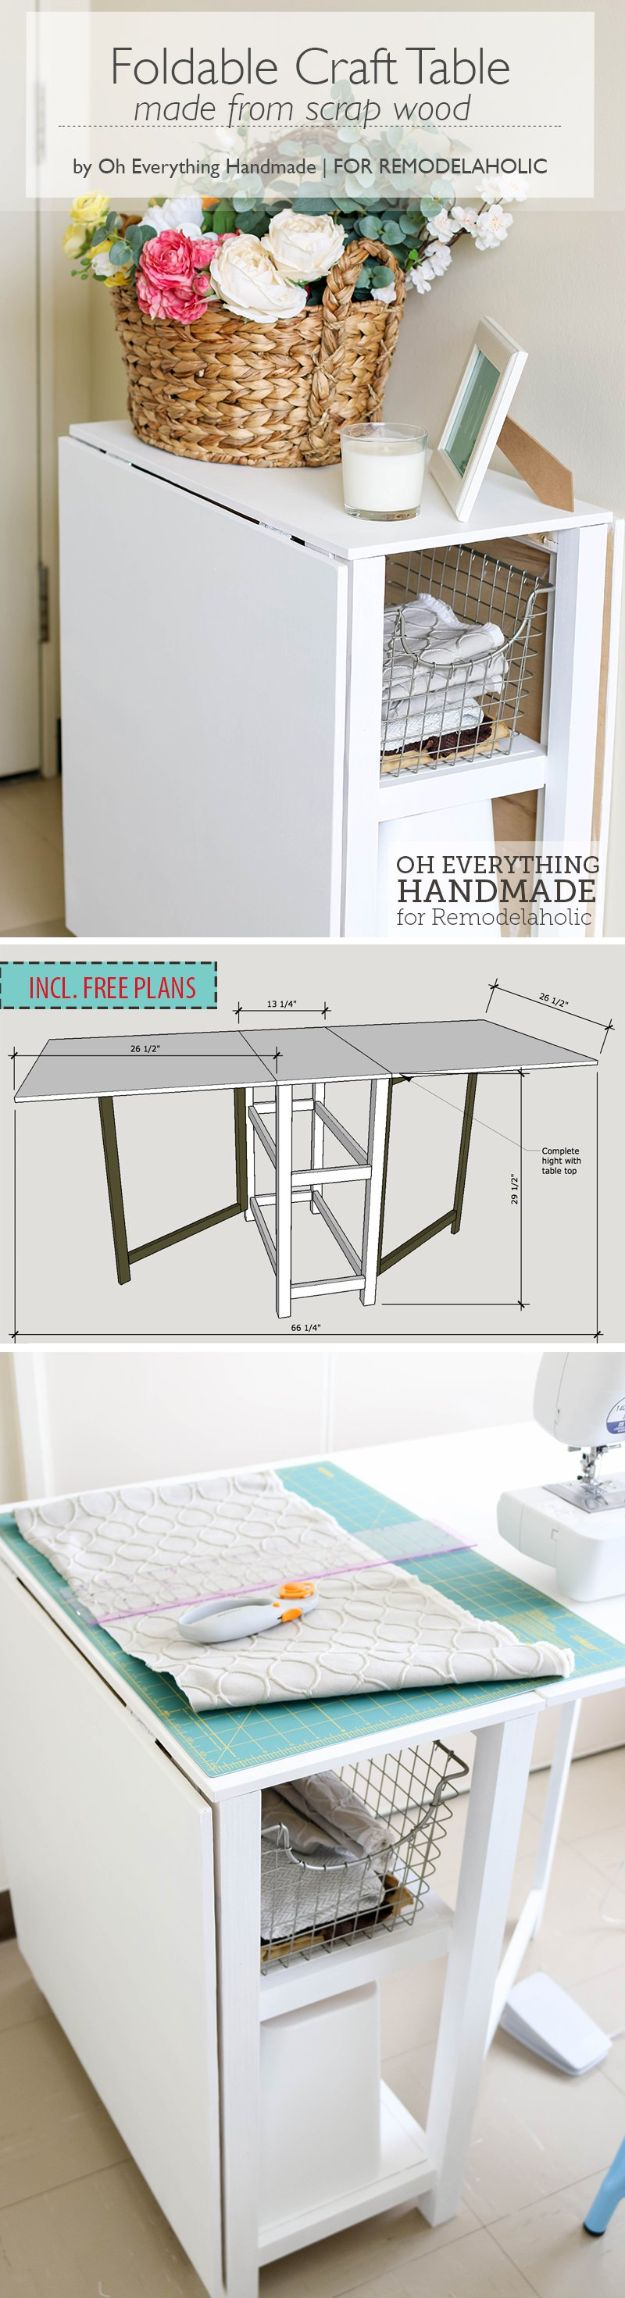 All White DIY Room Decor - DIY Foldable Craft Table - Creative Home Decor Ideas for the Bedroom and Living Room, Kitchen and Bathroom - Do It Yourself Crafts and White Wall Art, Bedding, Curtains, Lamps, Lighting, Rugs and Accessories - Easy Room Decoration Ideas for Modern, Vintage Farmhouse and Minimalist Furnishings - Furniture, Wall Art and DIY Projects With Step by Step Tutorials and Instructions #diydecor